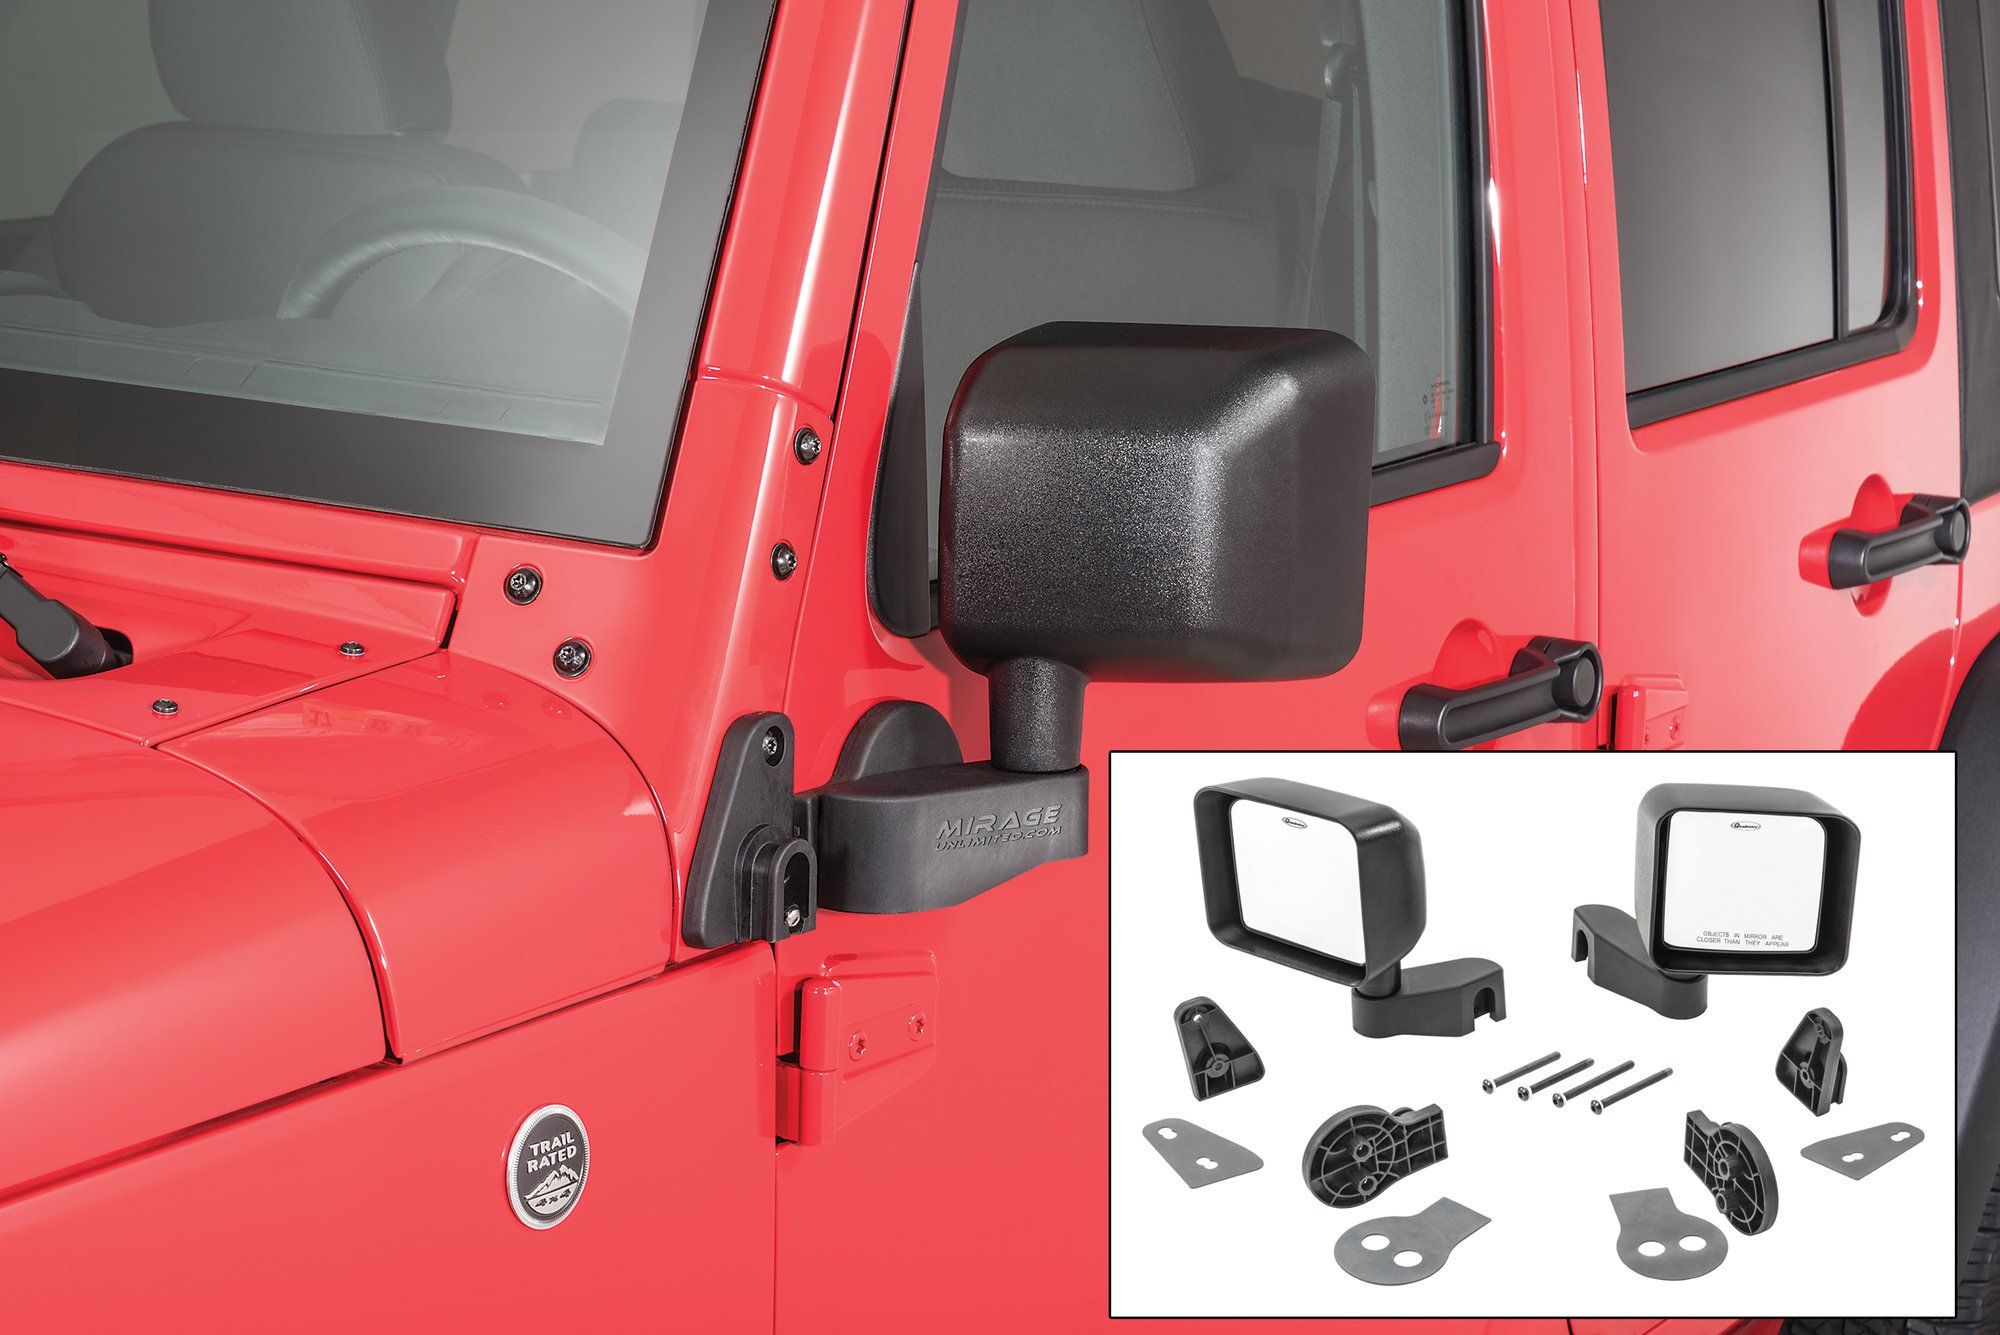 Pin On Jeep Wrangler Mod Ideas